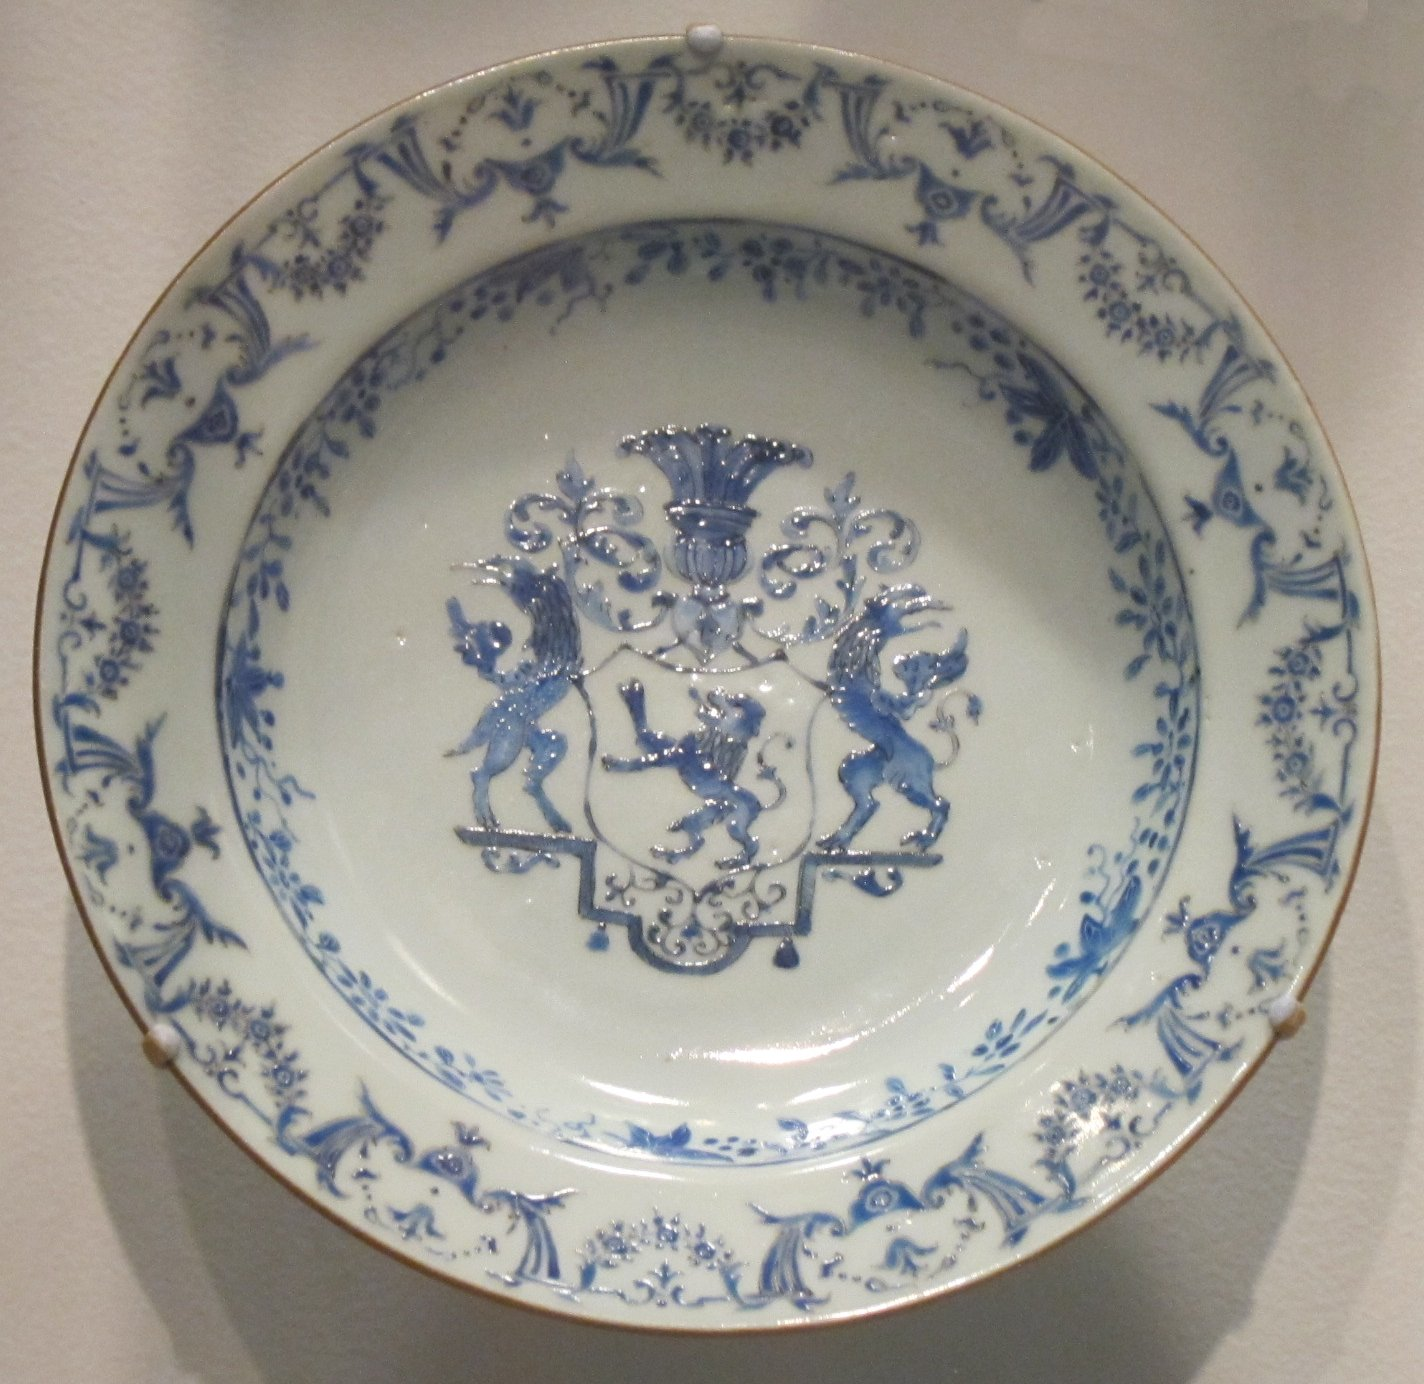 File:Soup plate, c. 1760, Chinese export ware, hard-paste